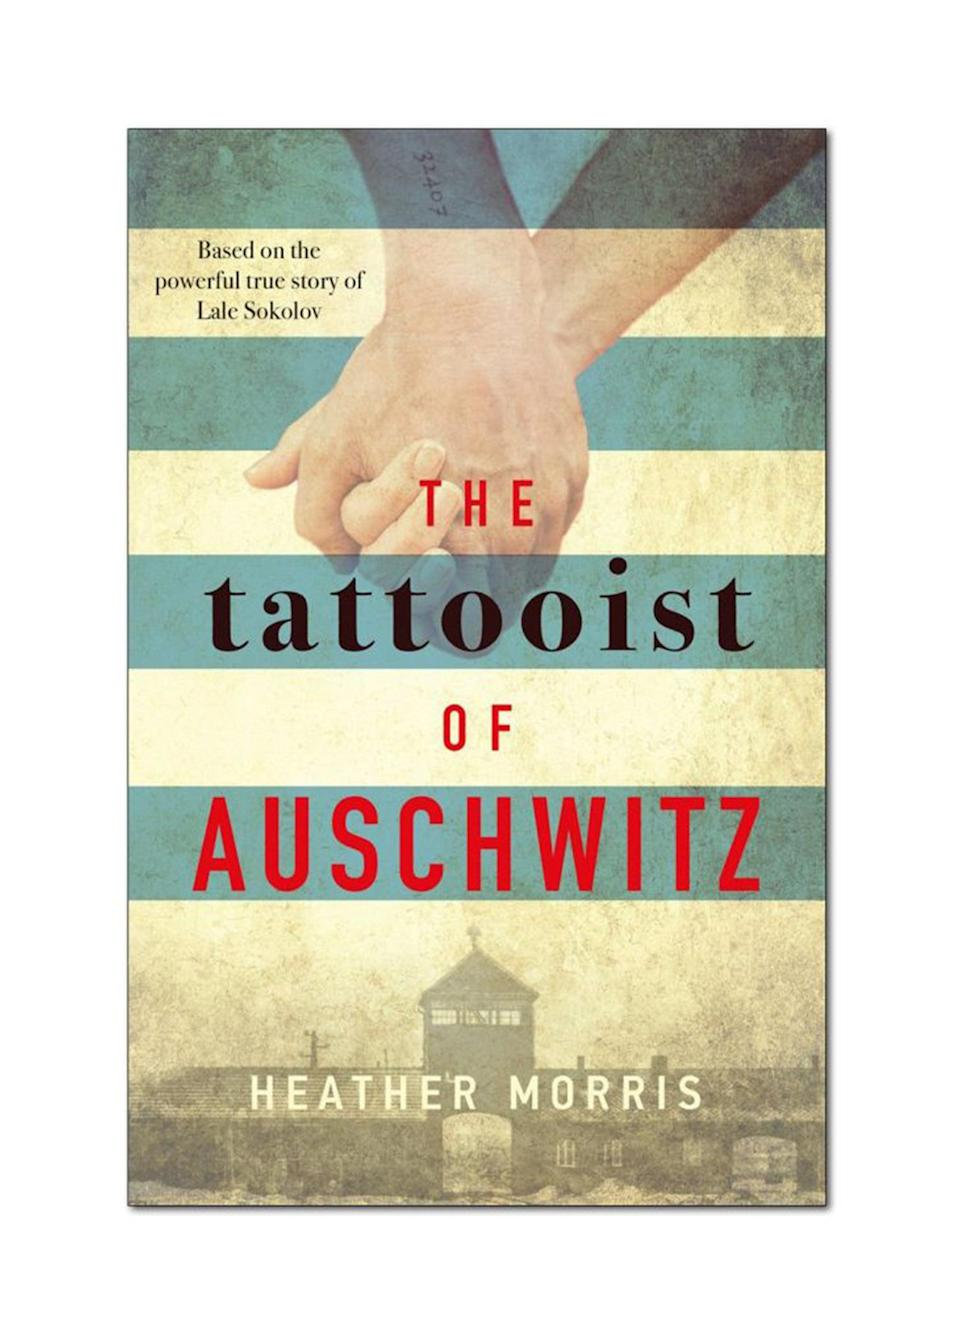 """<p>On the hunt for a new read to get stuck into? Look no further for the Heather Morris book everyone has been talking about. <em><a href=""""https://www.waterstones.com/book/the-tattooist-of-auschwitz/heather-morris/9781785763670#reviews"""" rel=""""nofollow noopener"""" target=""""_blank"""" data-ylk=""""slk:Shop now"""" class=""""link rapid-noclick-resp"""">Shop now</a>.</em> </p>"""